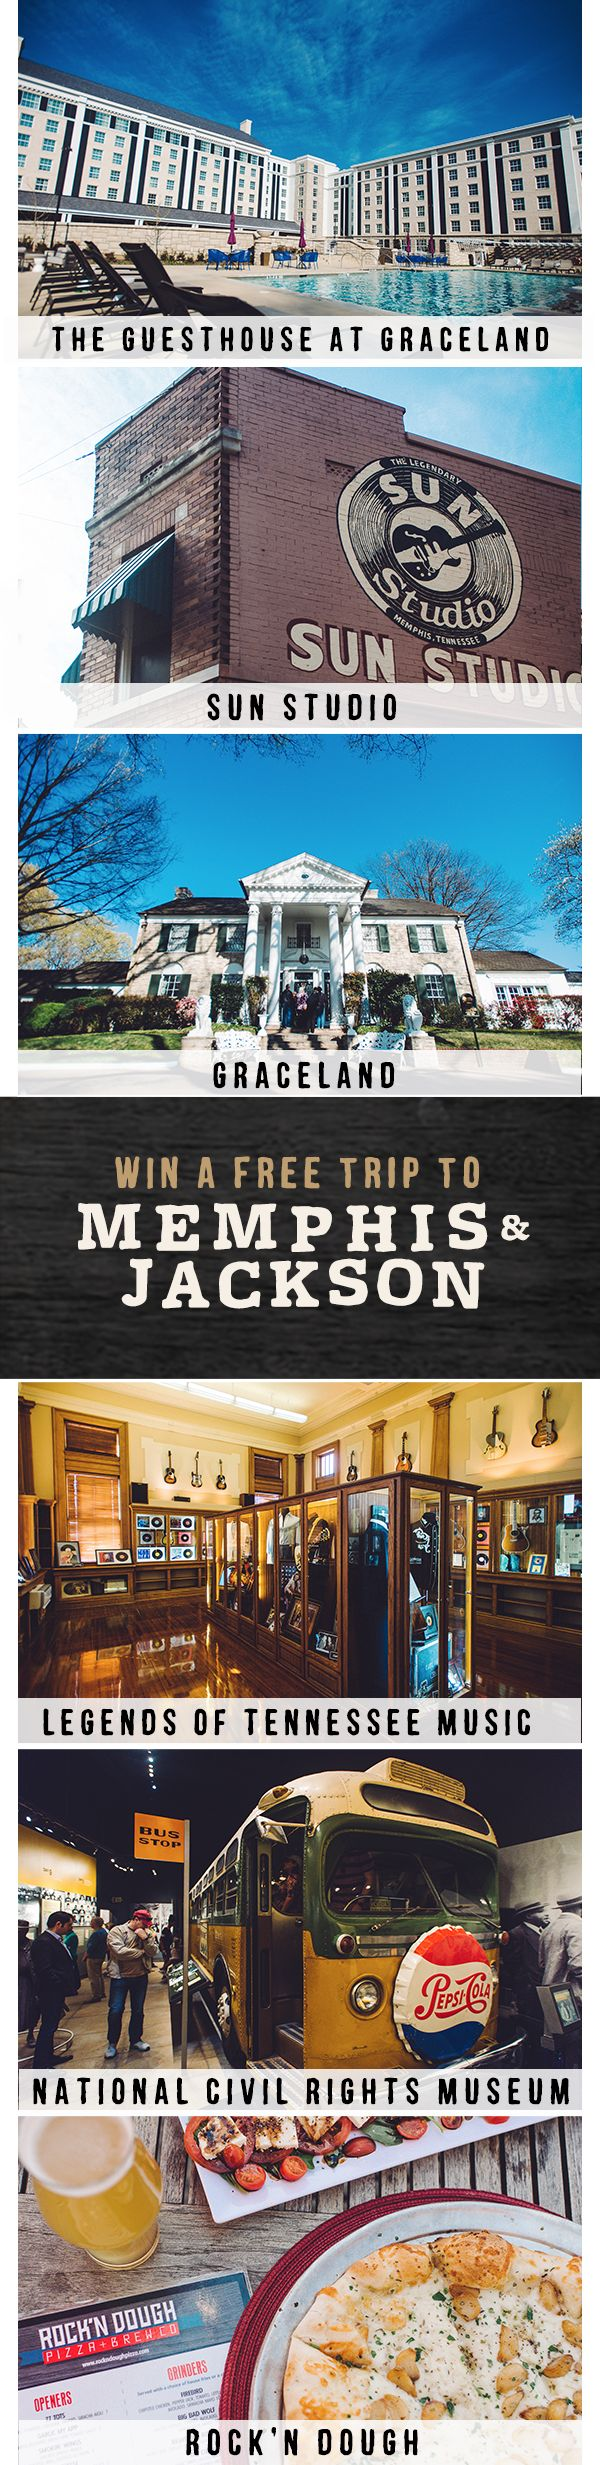 We're giving away a free trip to Memphis and Jackson. Simply match all the same amazing spots in this pin at tnvacation.com/matchmytrip, and you'll be entered for a chance to win!